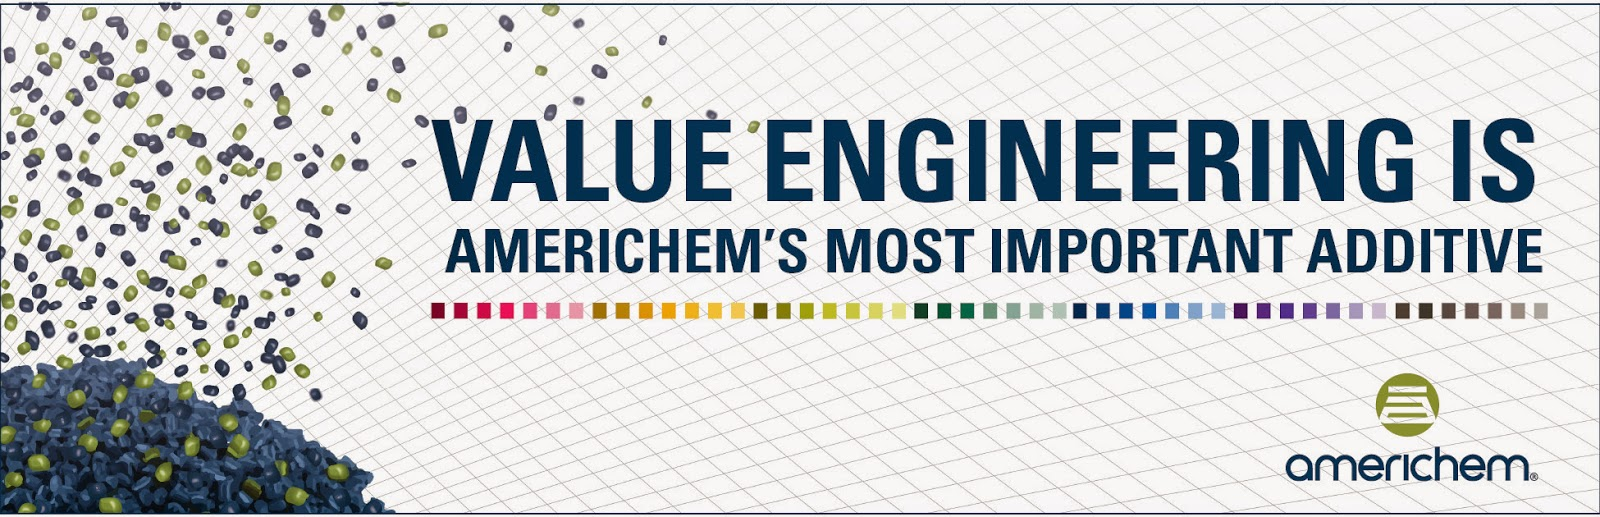 Inspired Color Defined Performance Value Engineering Is